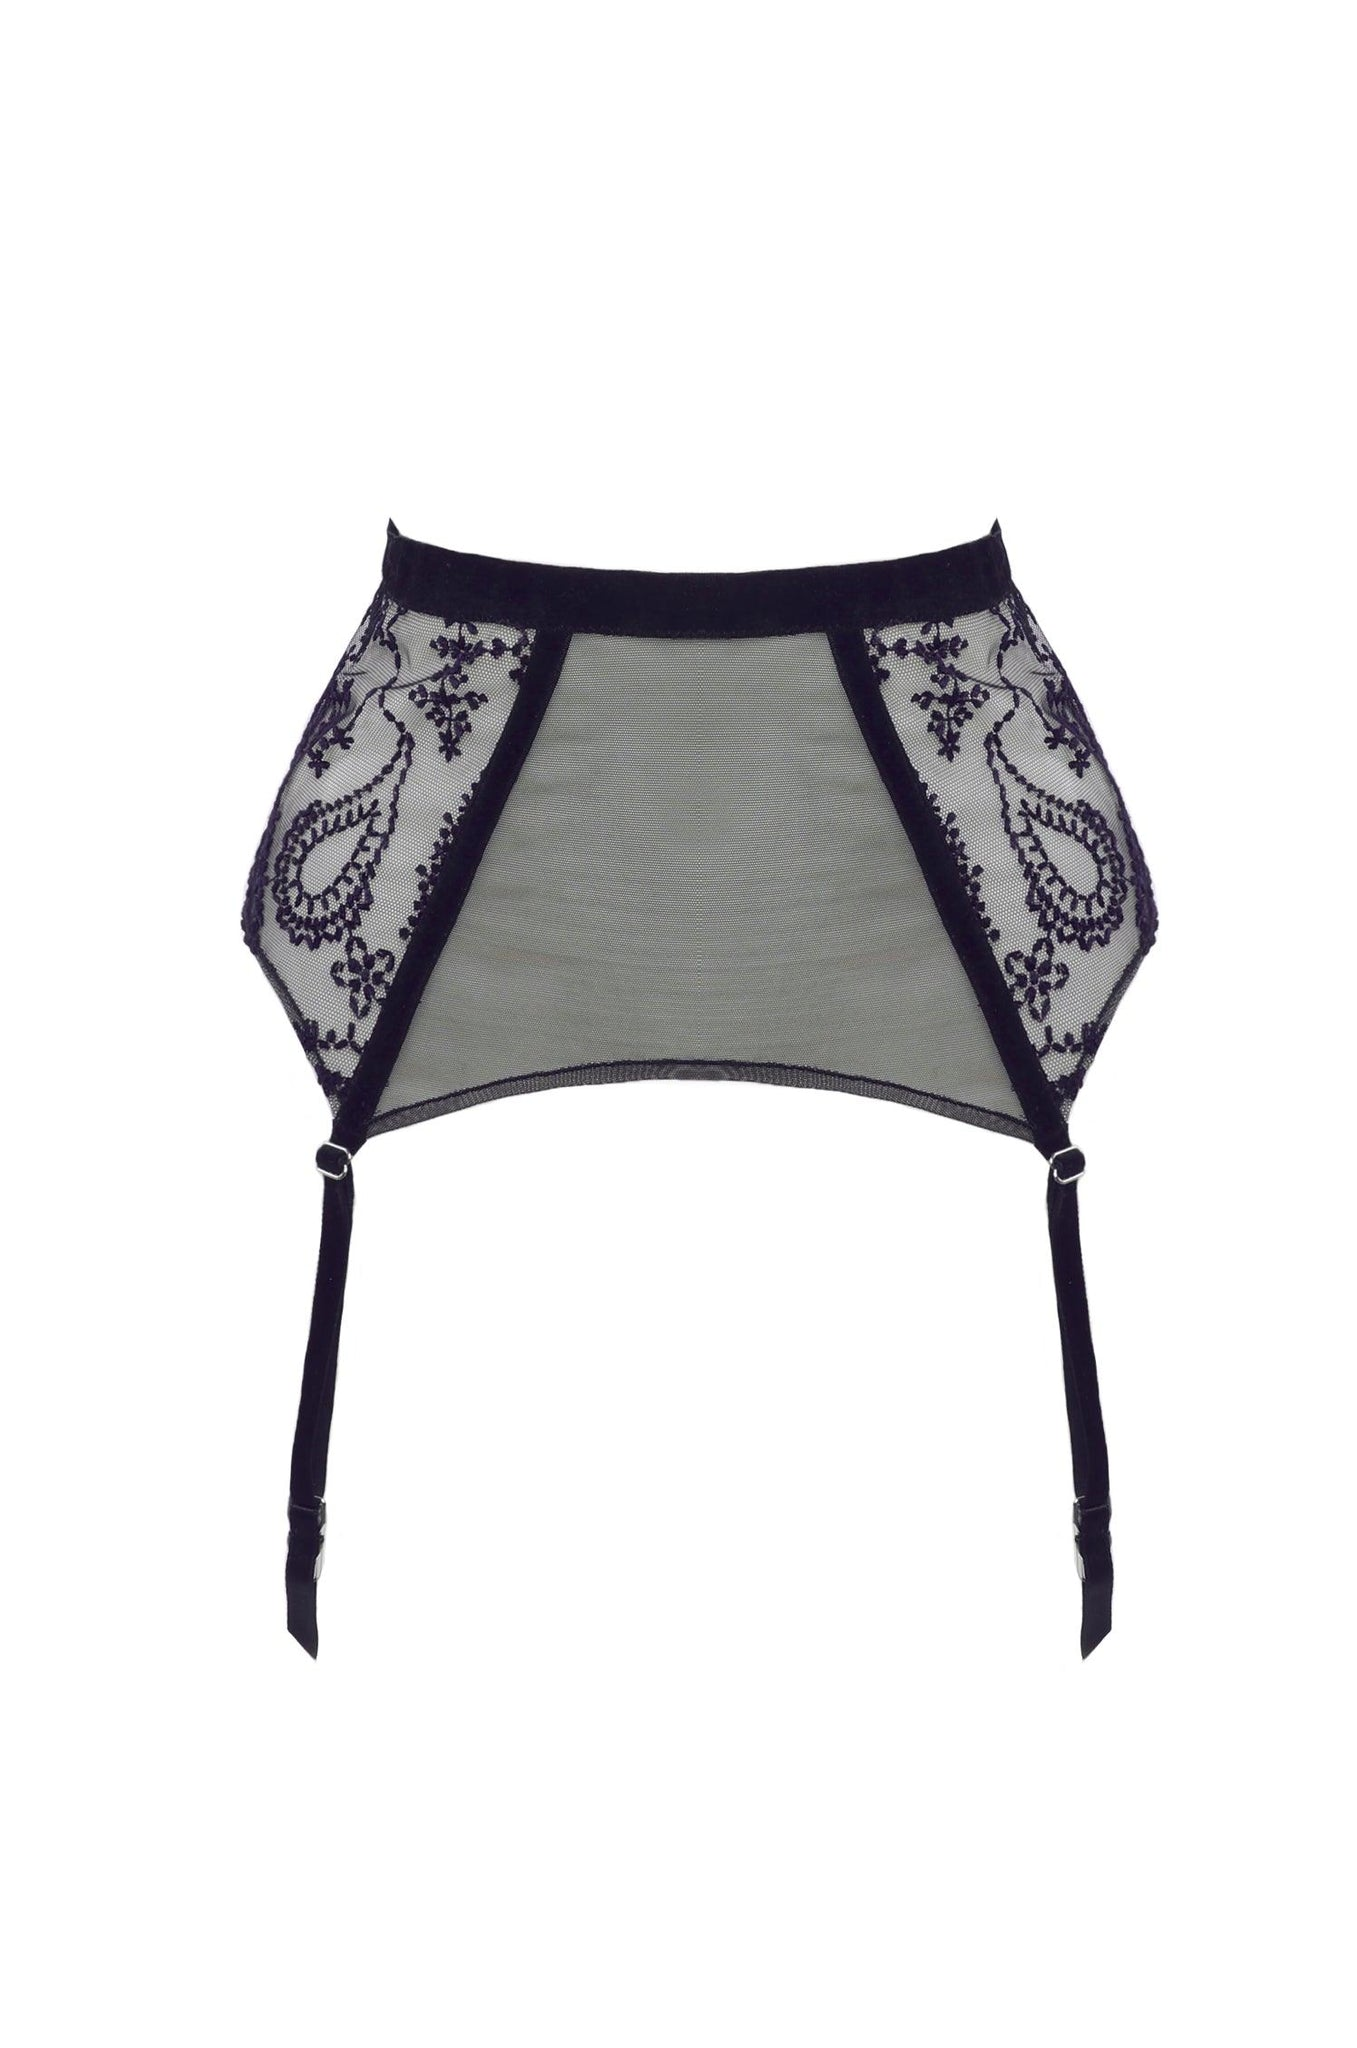 Maria-Theresien suspender belt